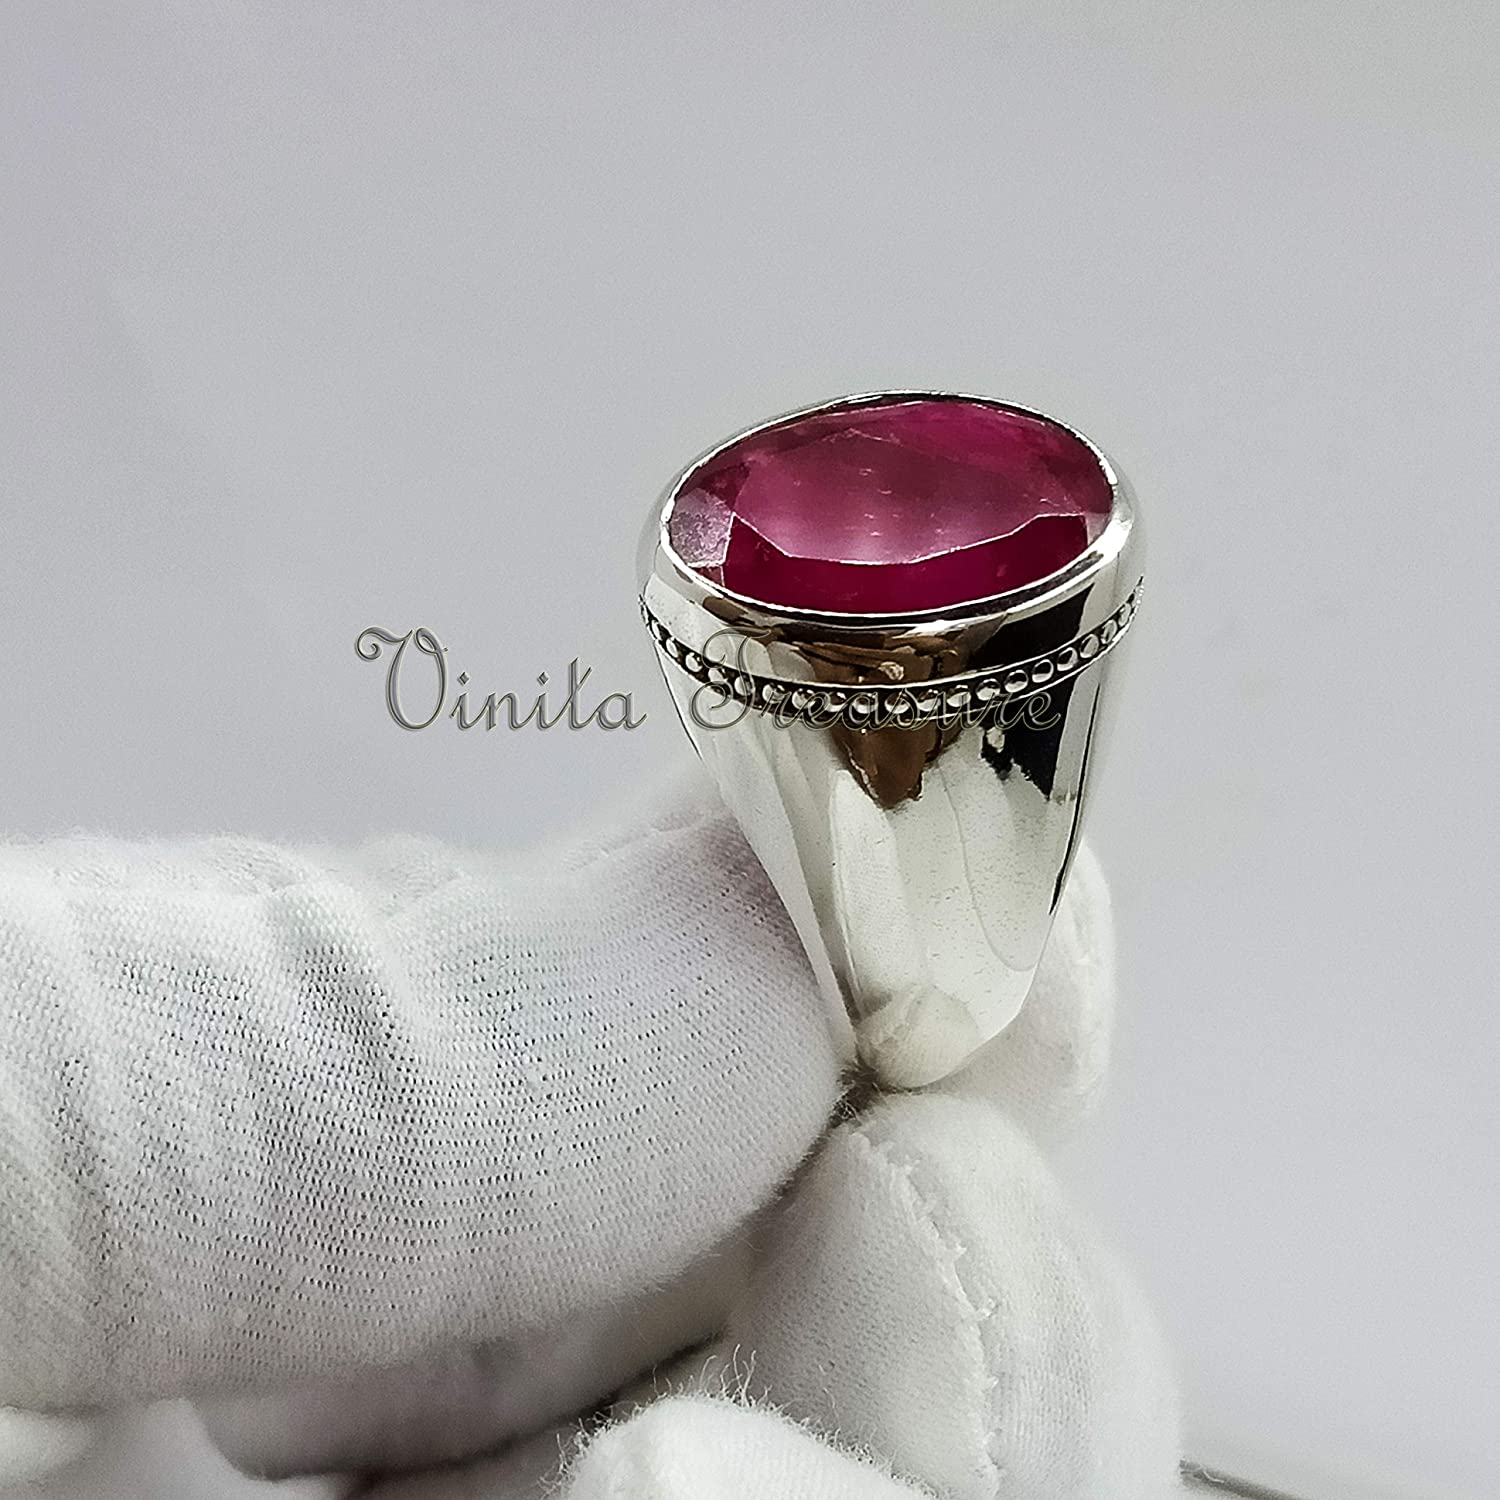 Natural Ruby Ring In Sterling Silver 925 Sterling Silver Ring Men/'s Stylish ring Wedding Ring Wedding Band Gift For Him